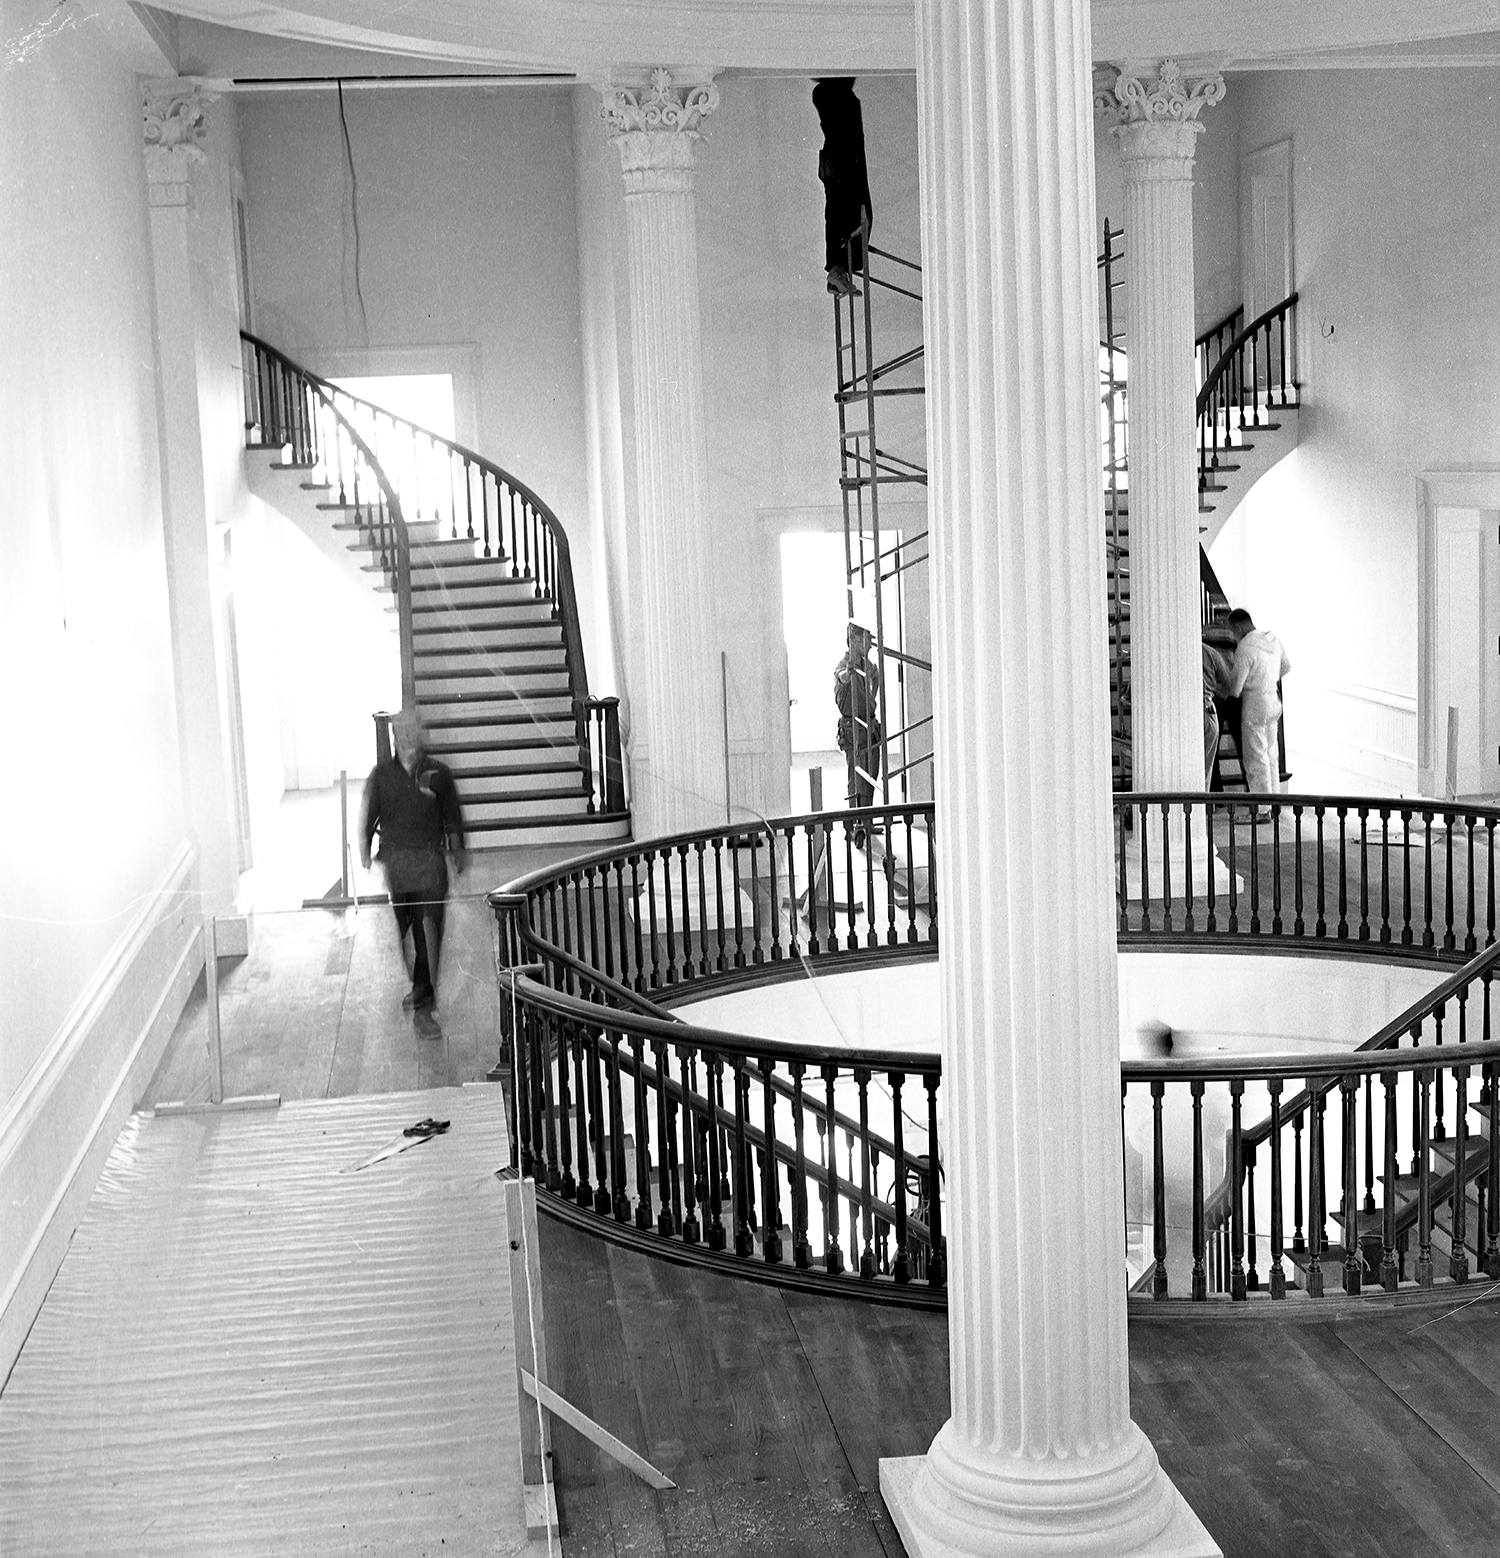 Old State Capitol State Historic Site preparations before official opening ceremony on Dec. 3, 1968. Photographed Dec. 2, 1968. File/The State Journal-Register